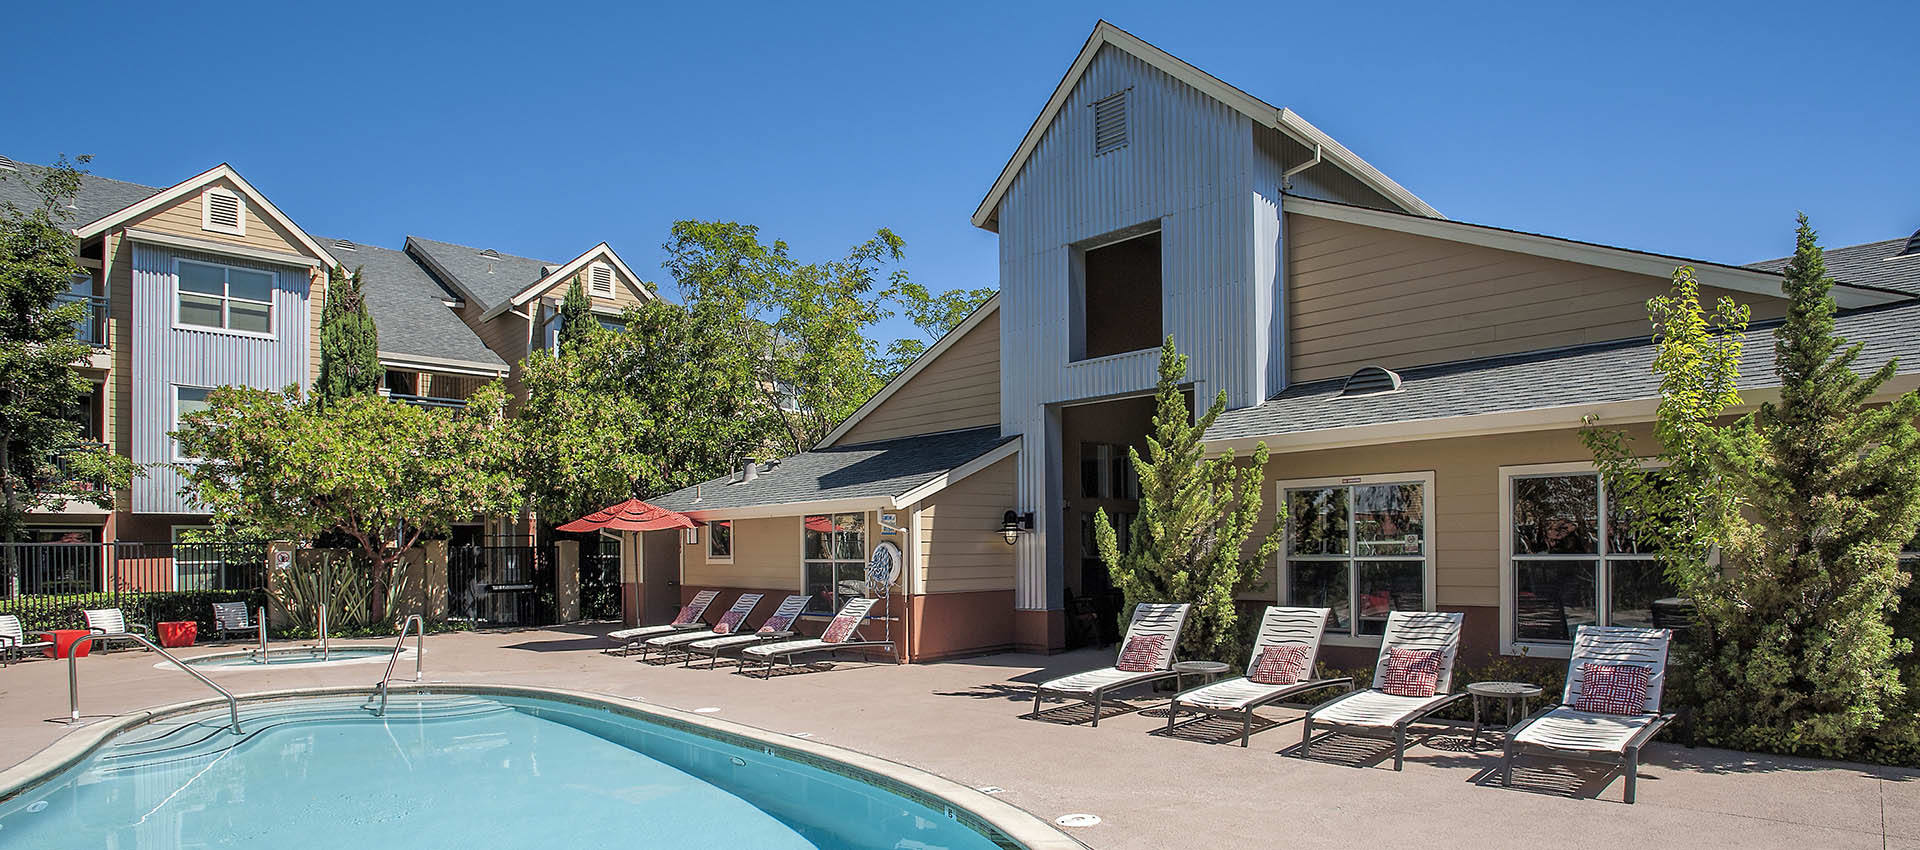 Catch Some Sun Around The Pool at Azure Apartment Homes in Petaluma, California